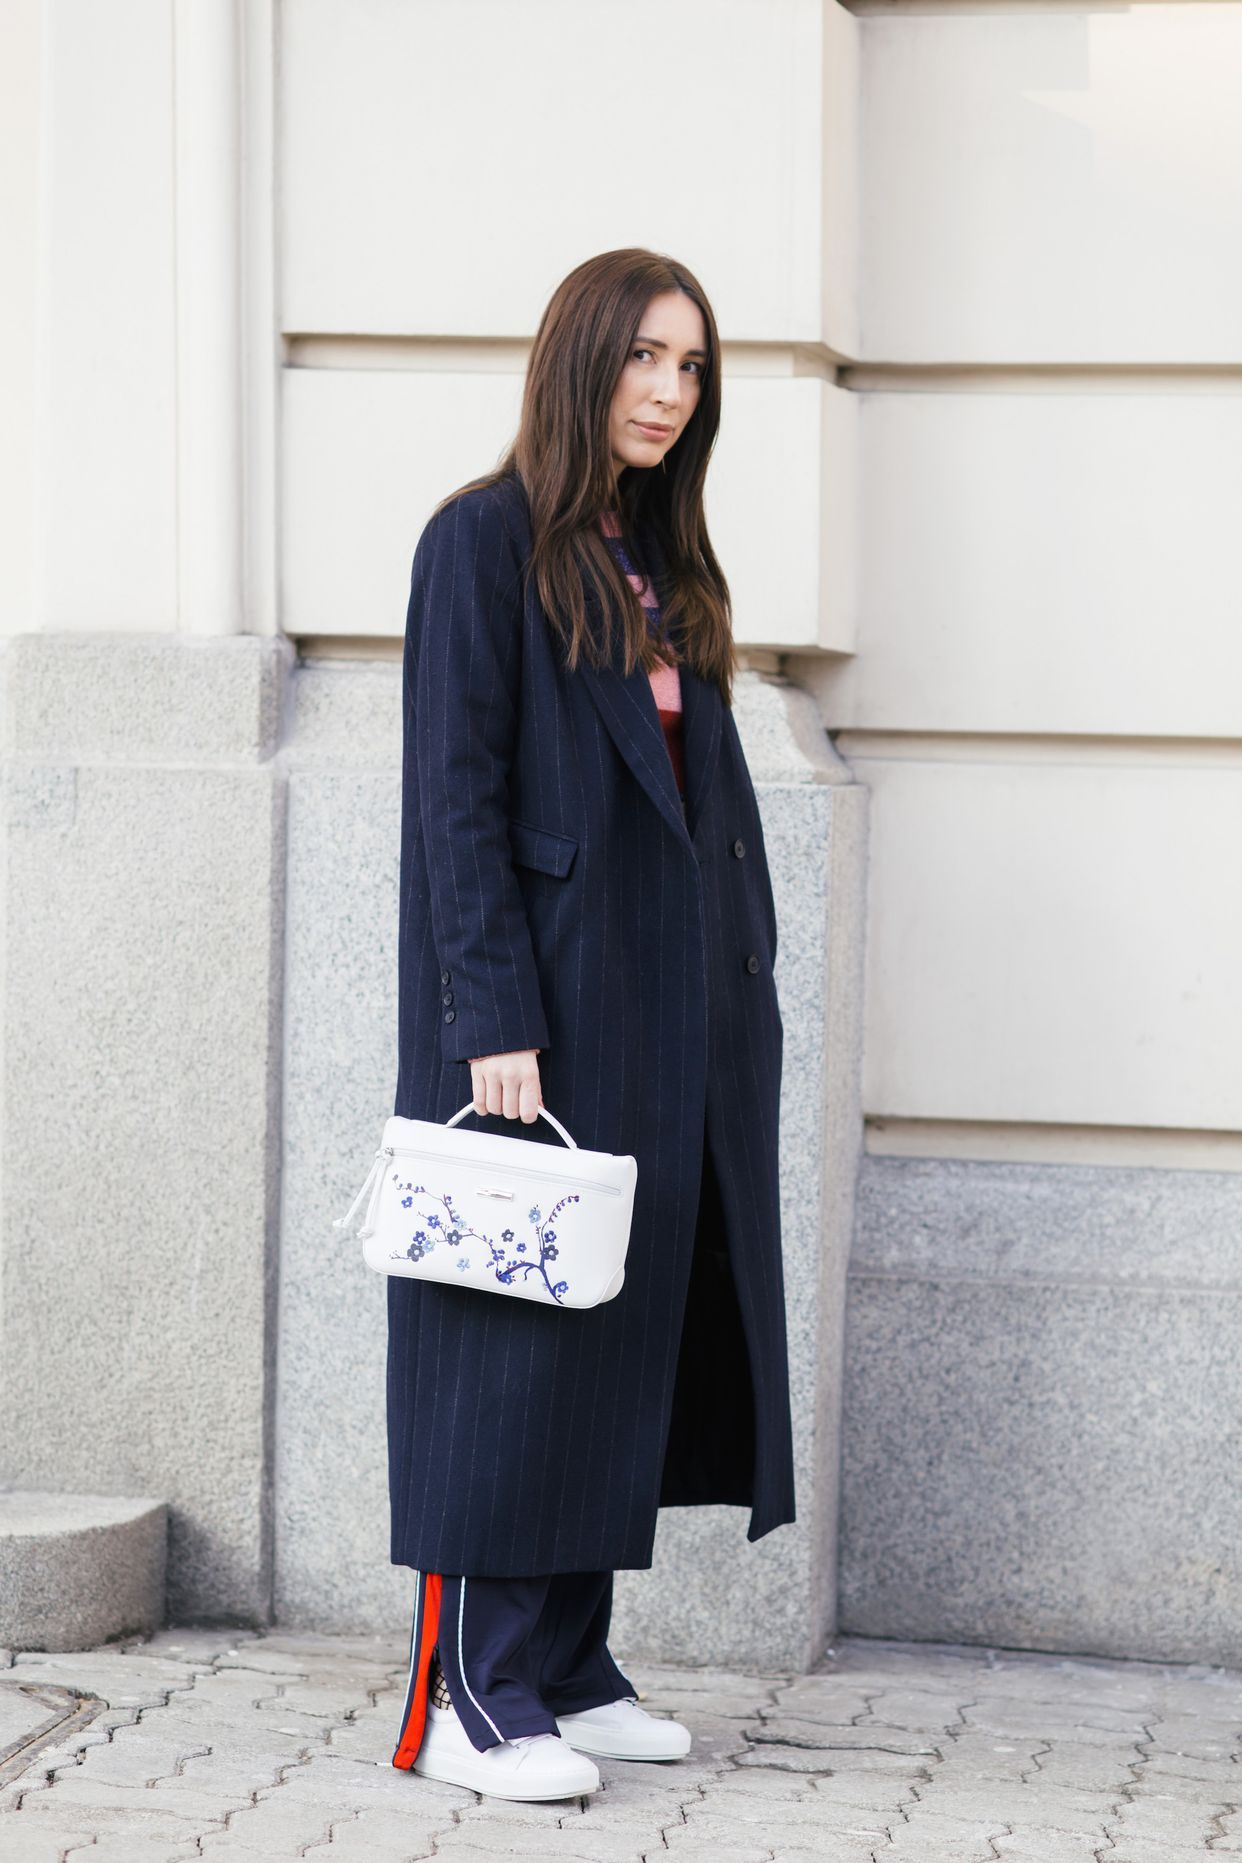 Fashion Week Survival Guide By 3 Top Bloggers